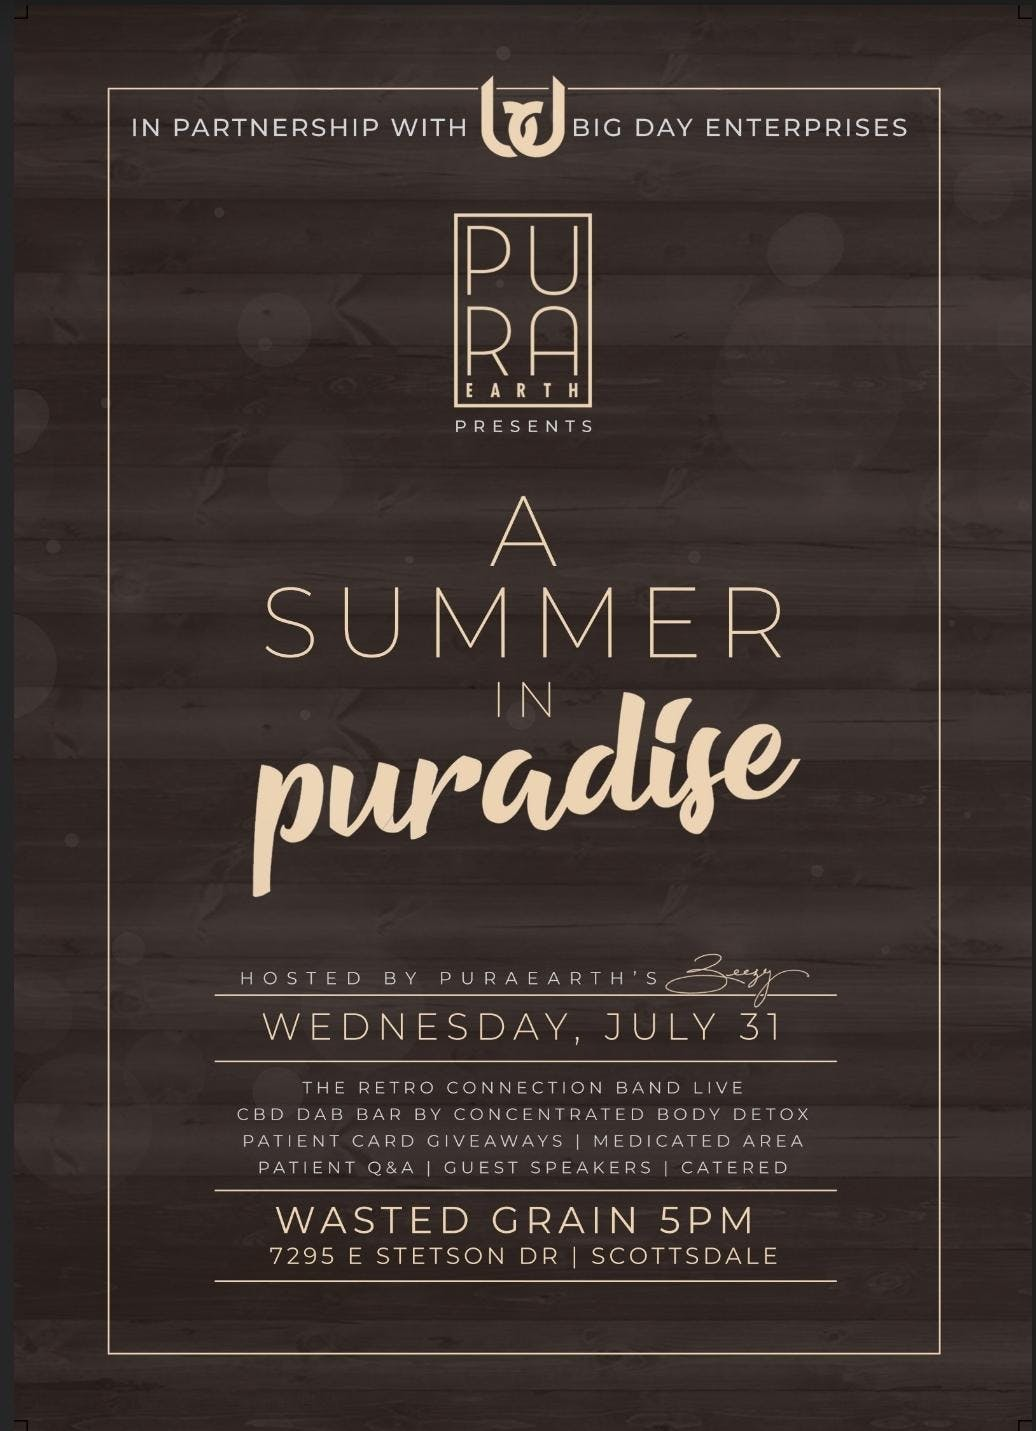 A Summer in Puradise